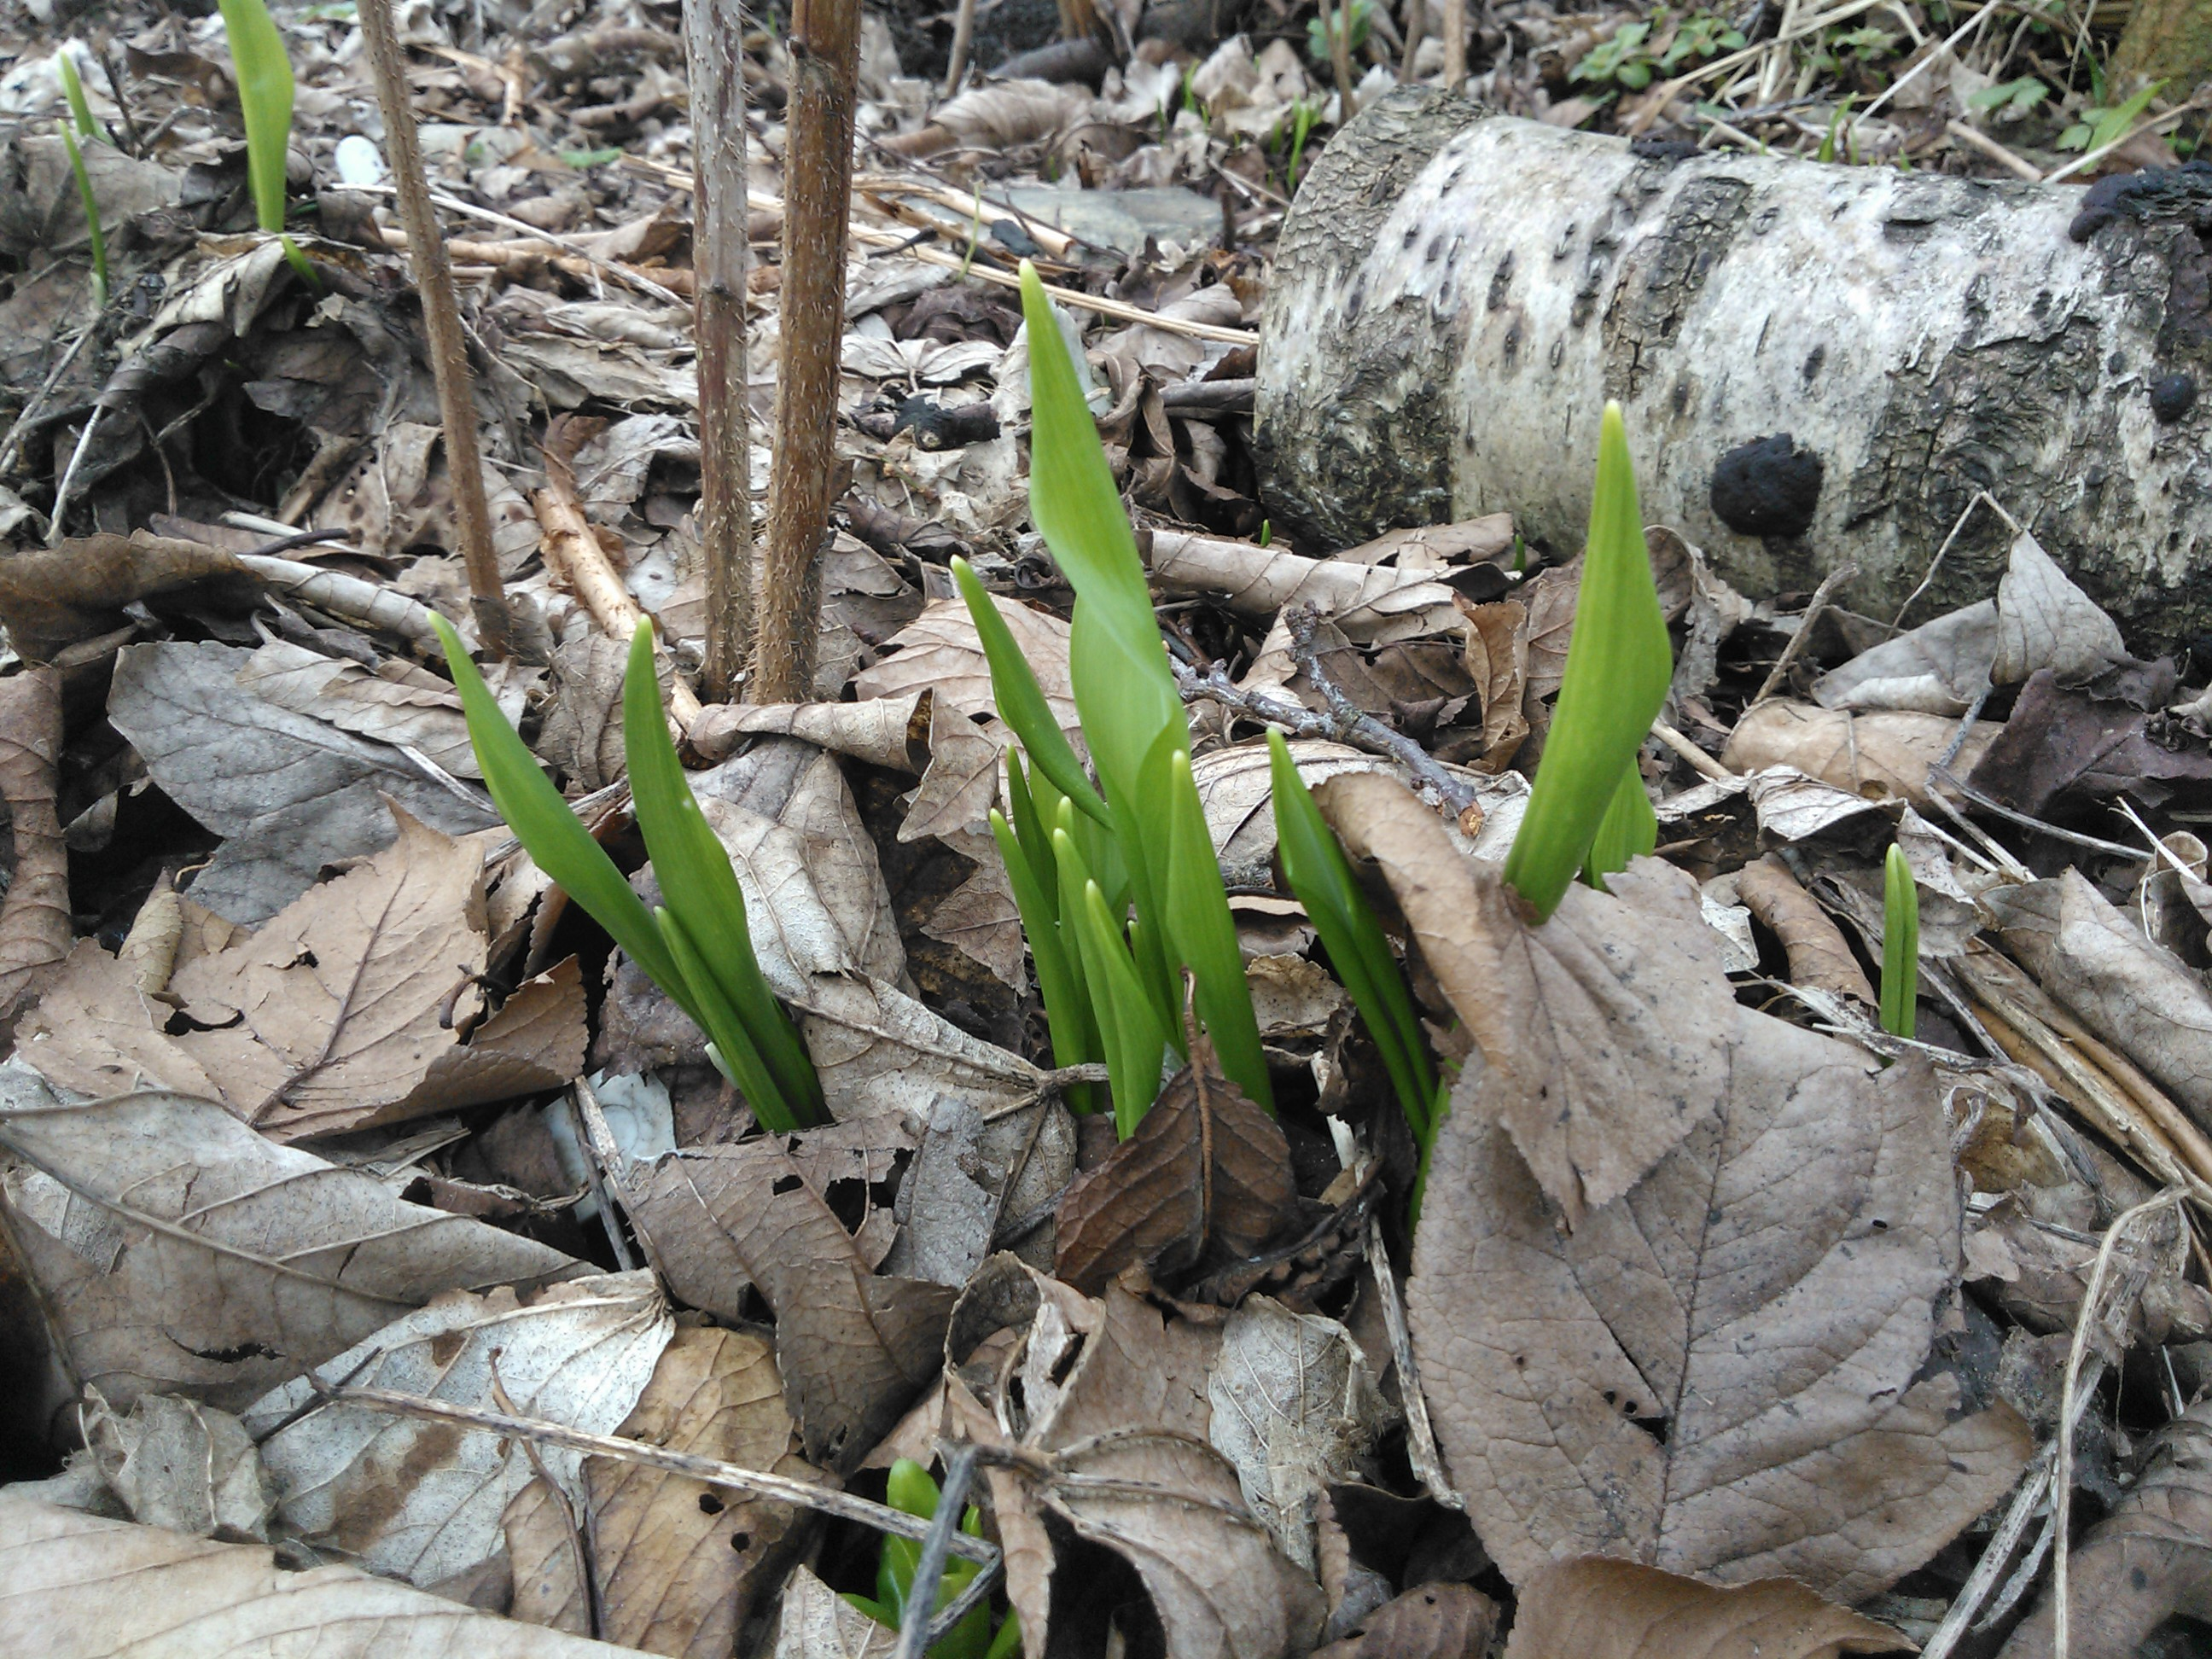 Wild Garlic Plant Wild Garlic Just Emerging